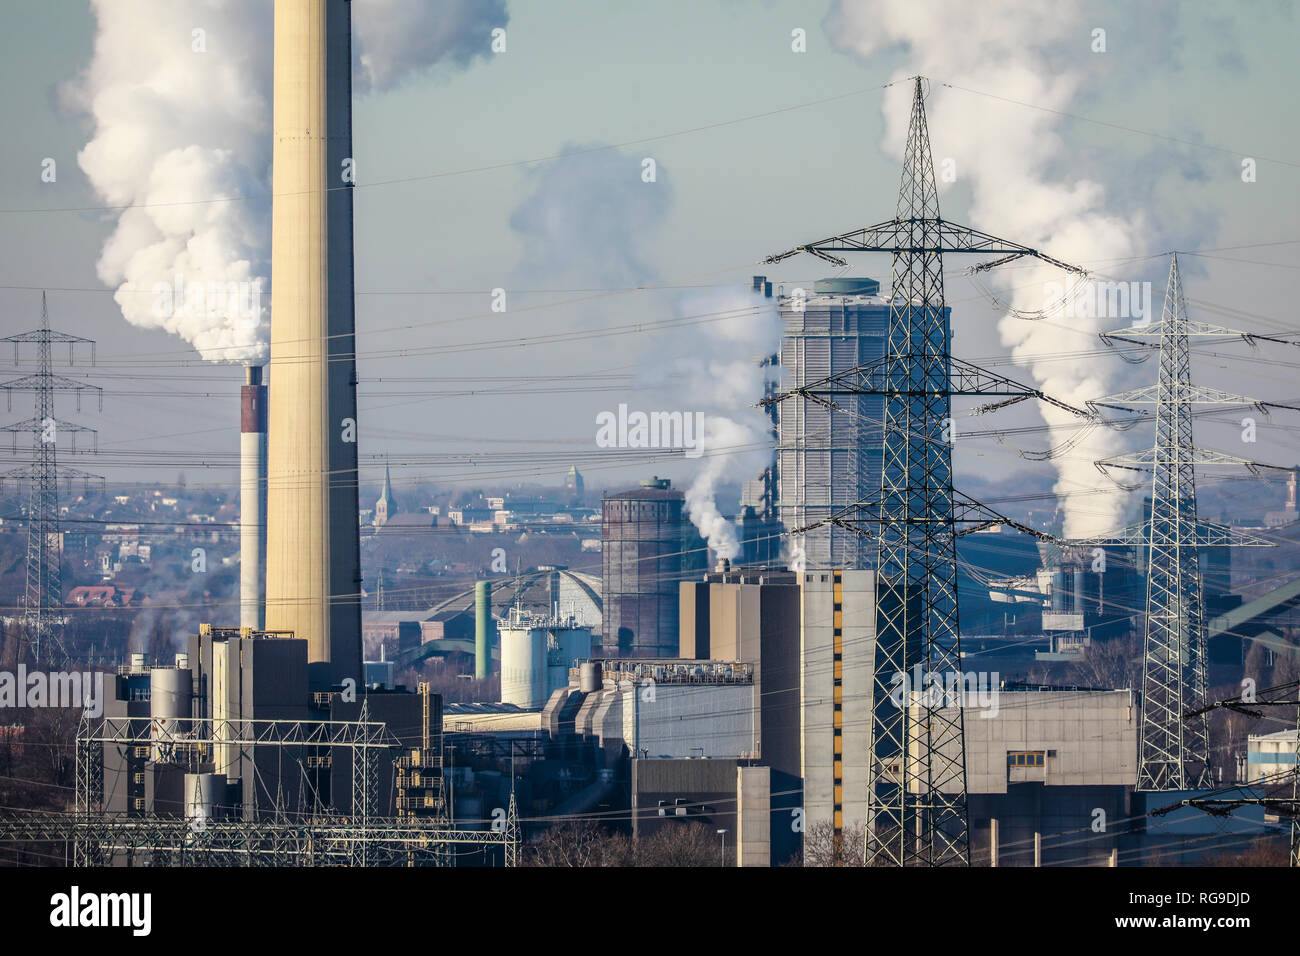 Essen, Ruhr area, North Rhine-Westphalia, Germany - Industrial landscape in the Ruhr area, on the left the RWE waste incineration plant Essen Carnap,  - Stock Image